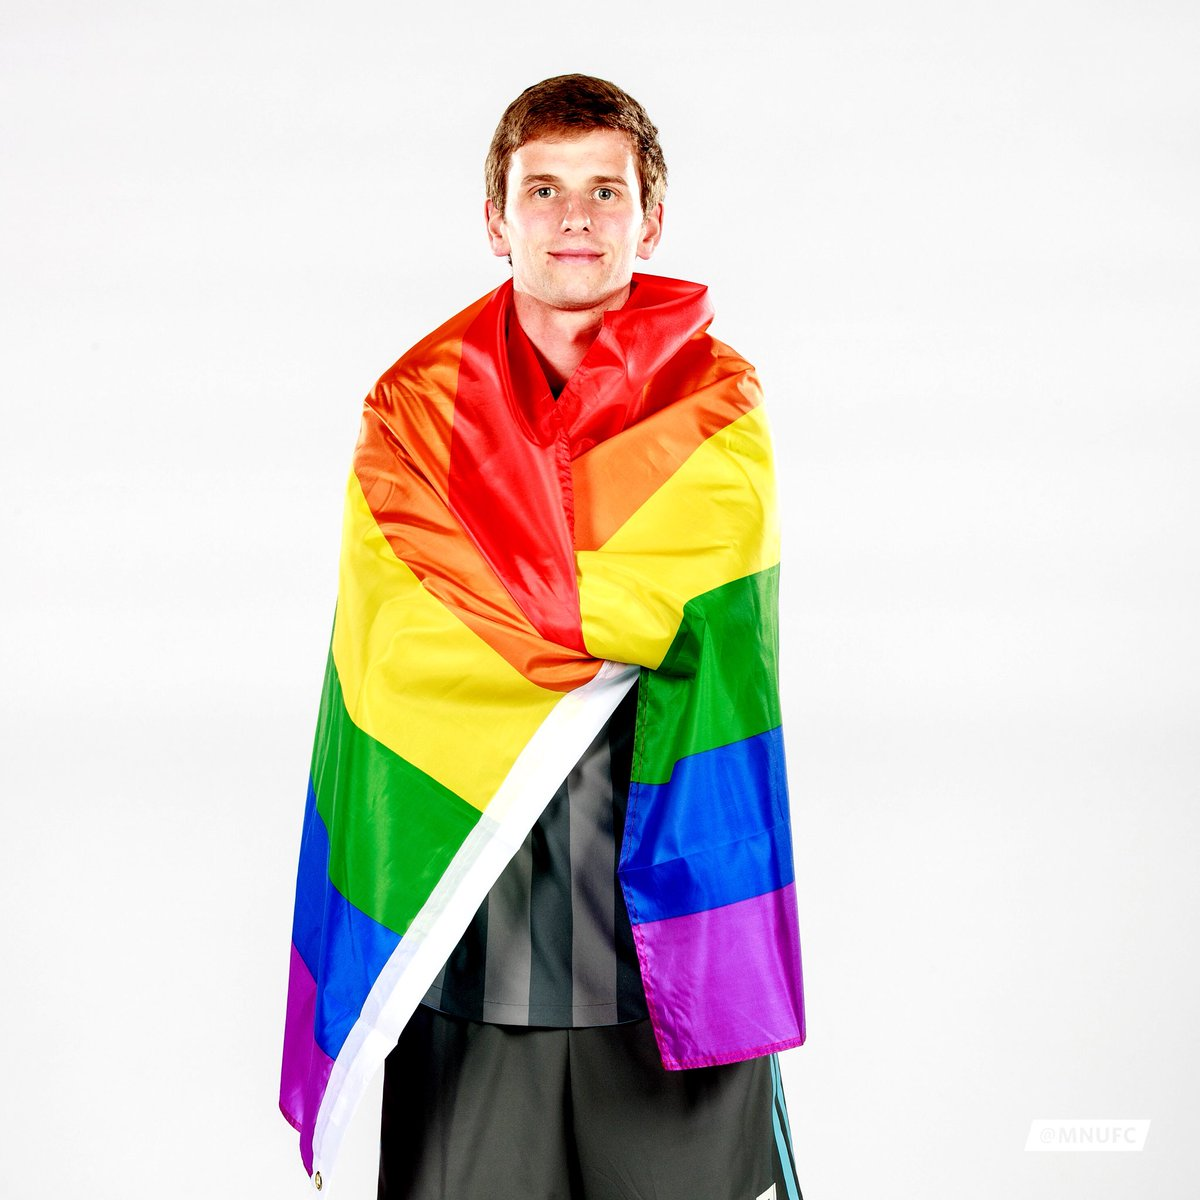 Collin Martin is the only male active openly gay player in professional US sports